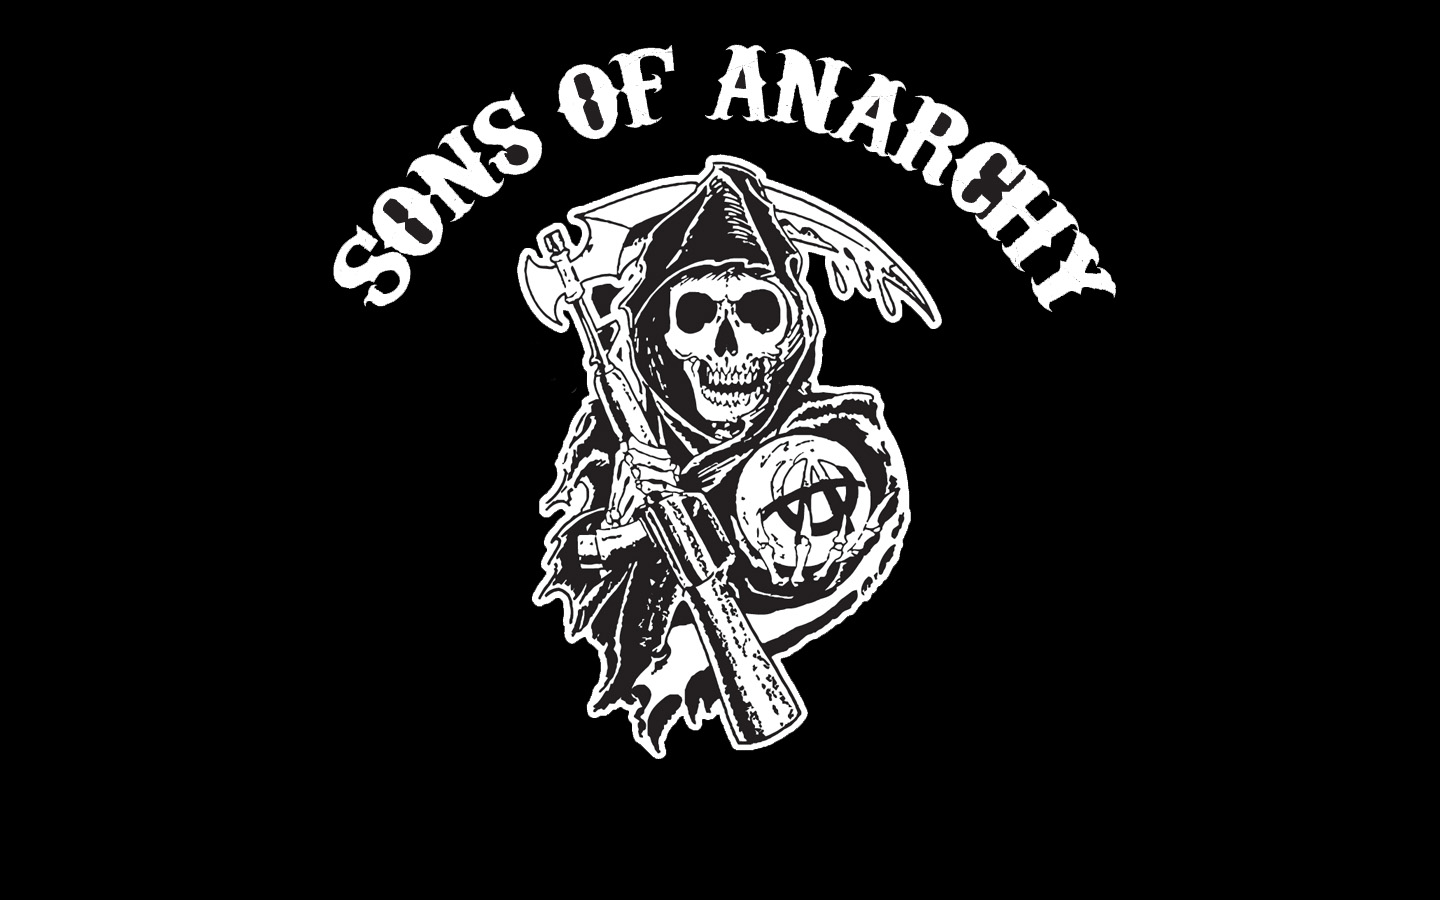 Sons Of Anarchy ...